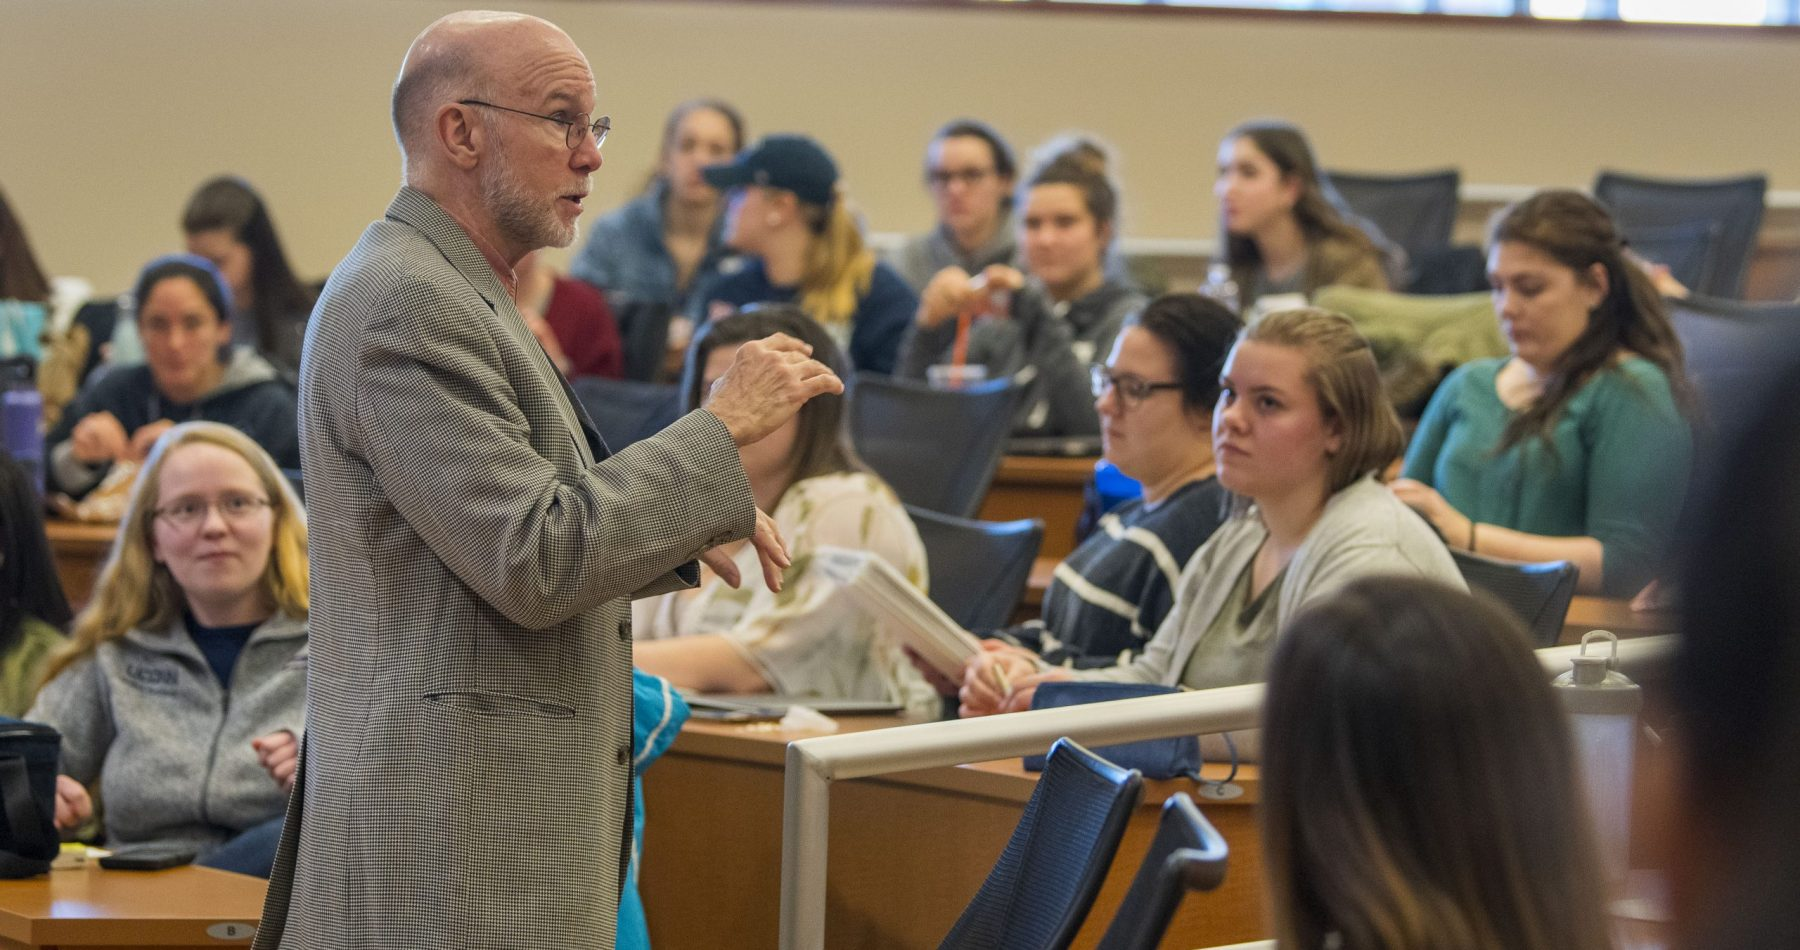 Professor Thomas Long gives a lecture in the Widmer Wing of the School of Nursing.